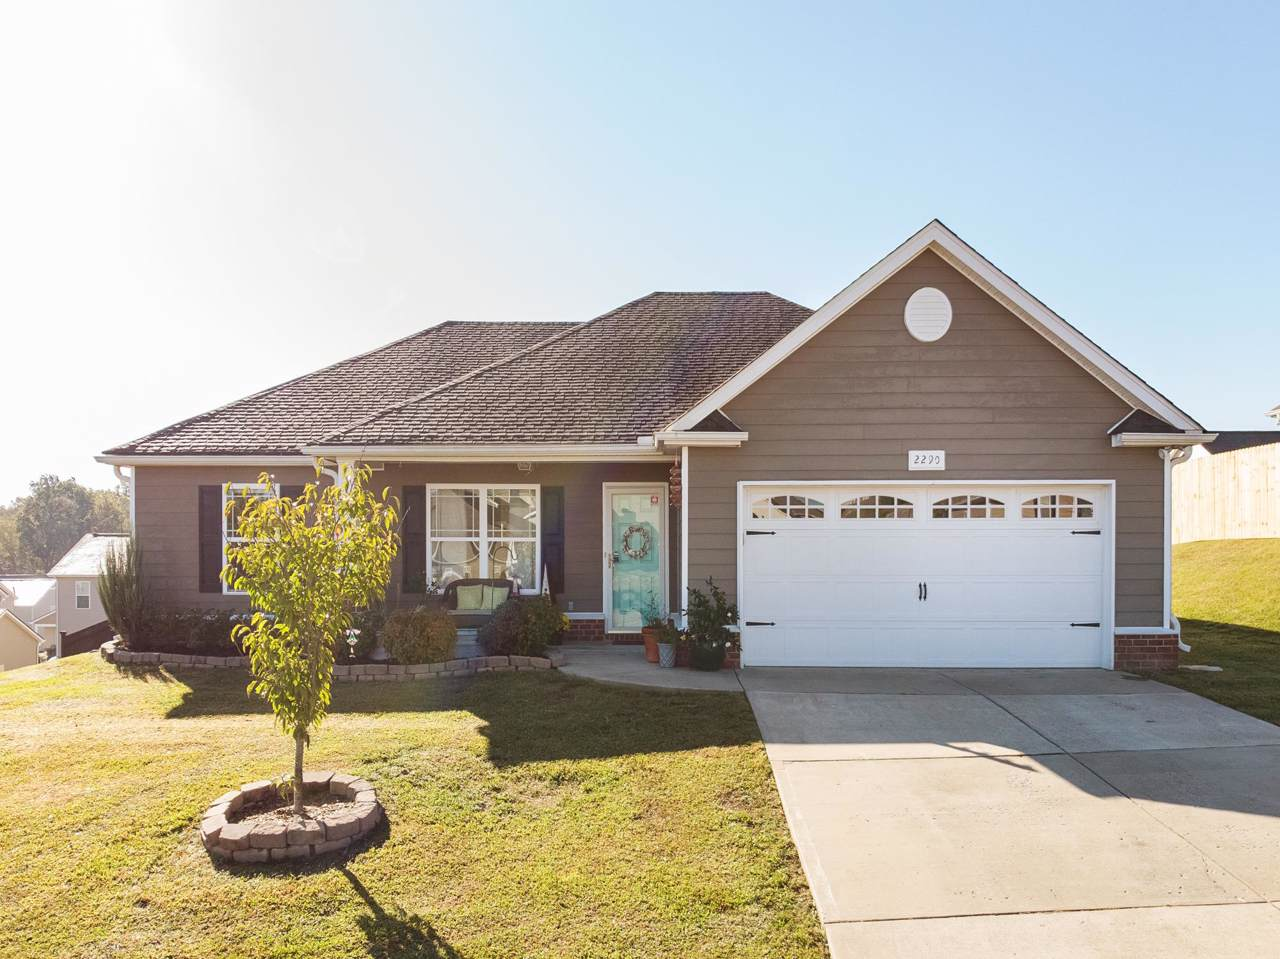 2290 Worker Bee Dr - Photo 1